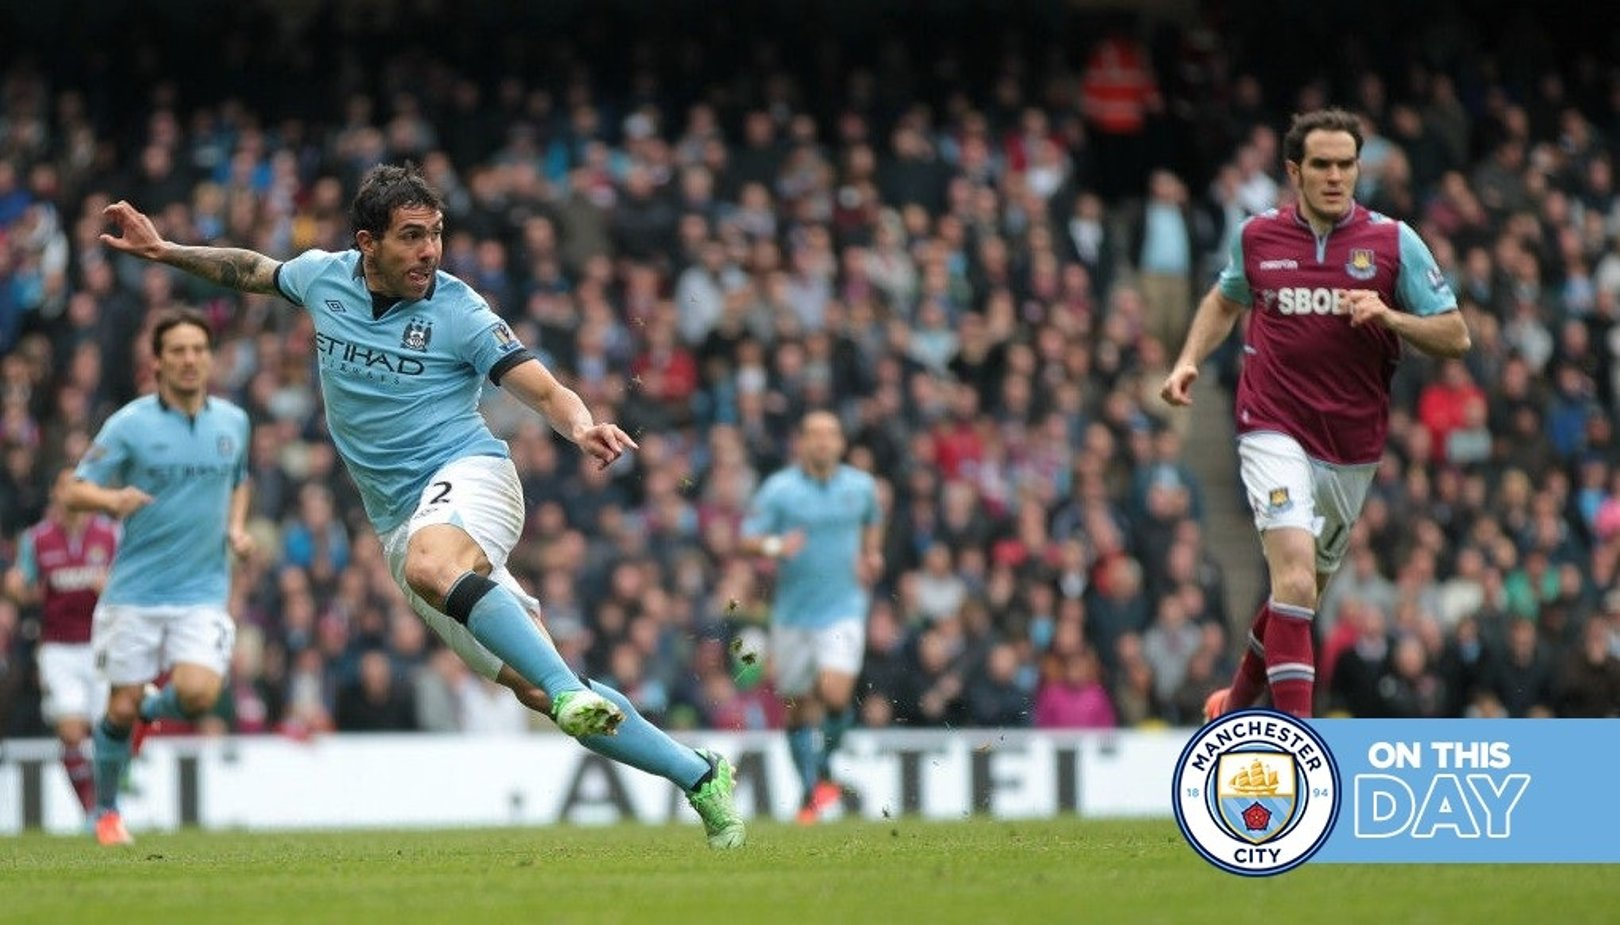 On this day: Tevez double sees off Hammers and Marsh's stunner